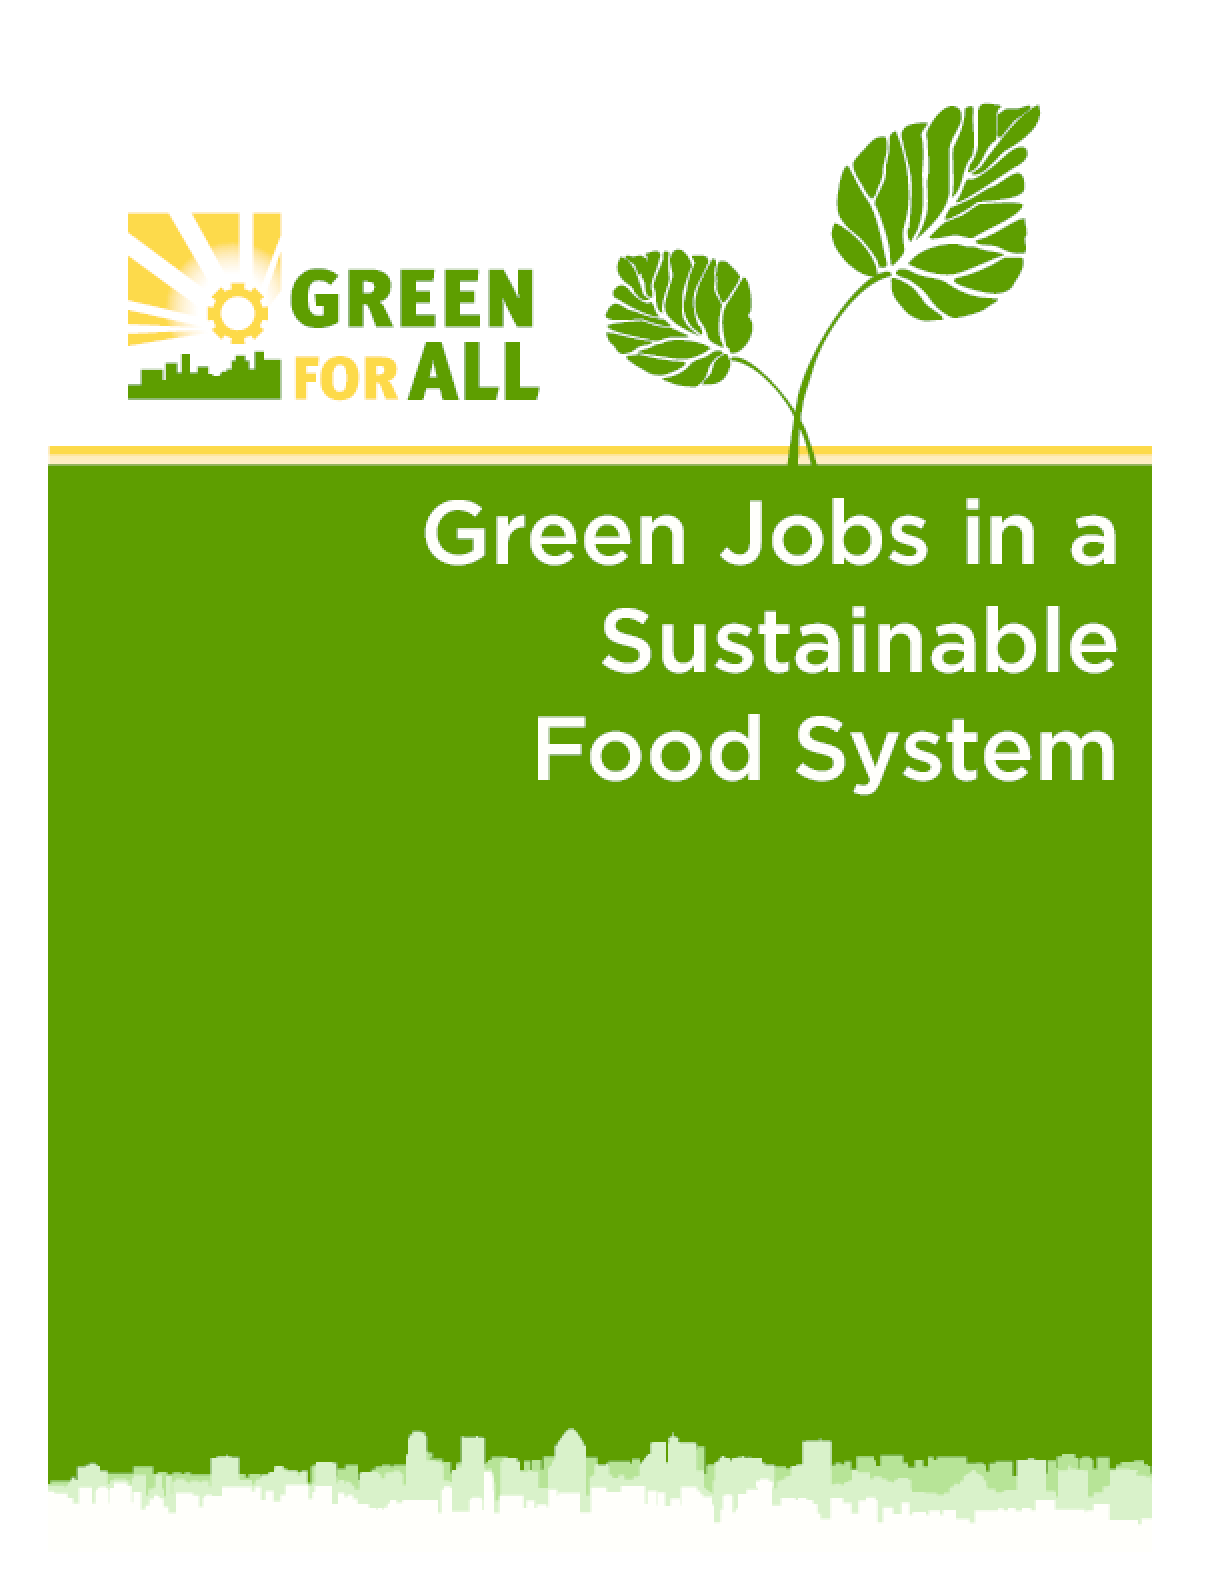 Green Jobs in a Sustainable Food System